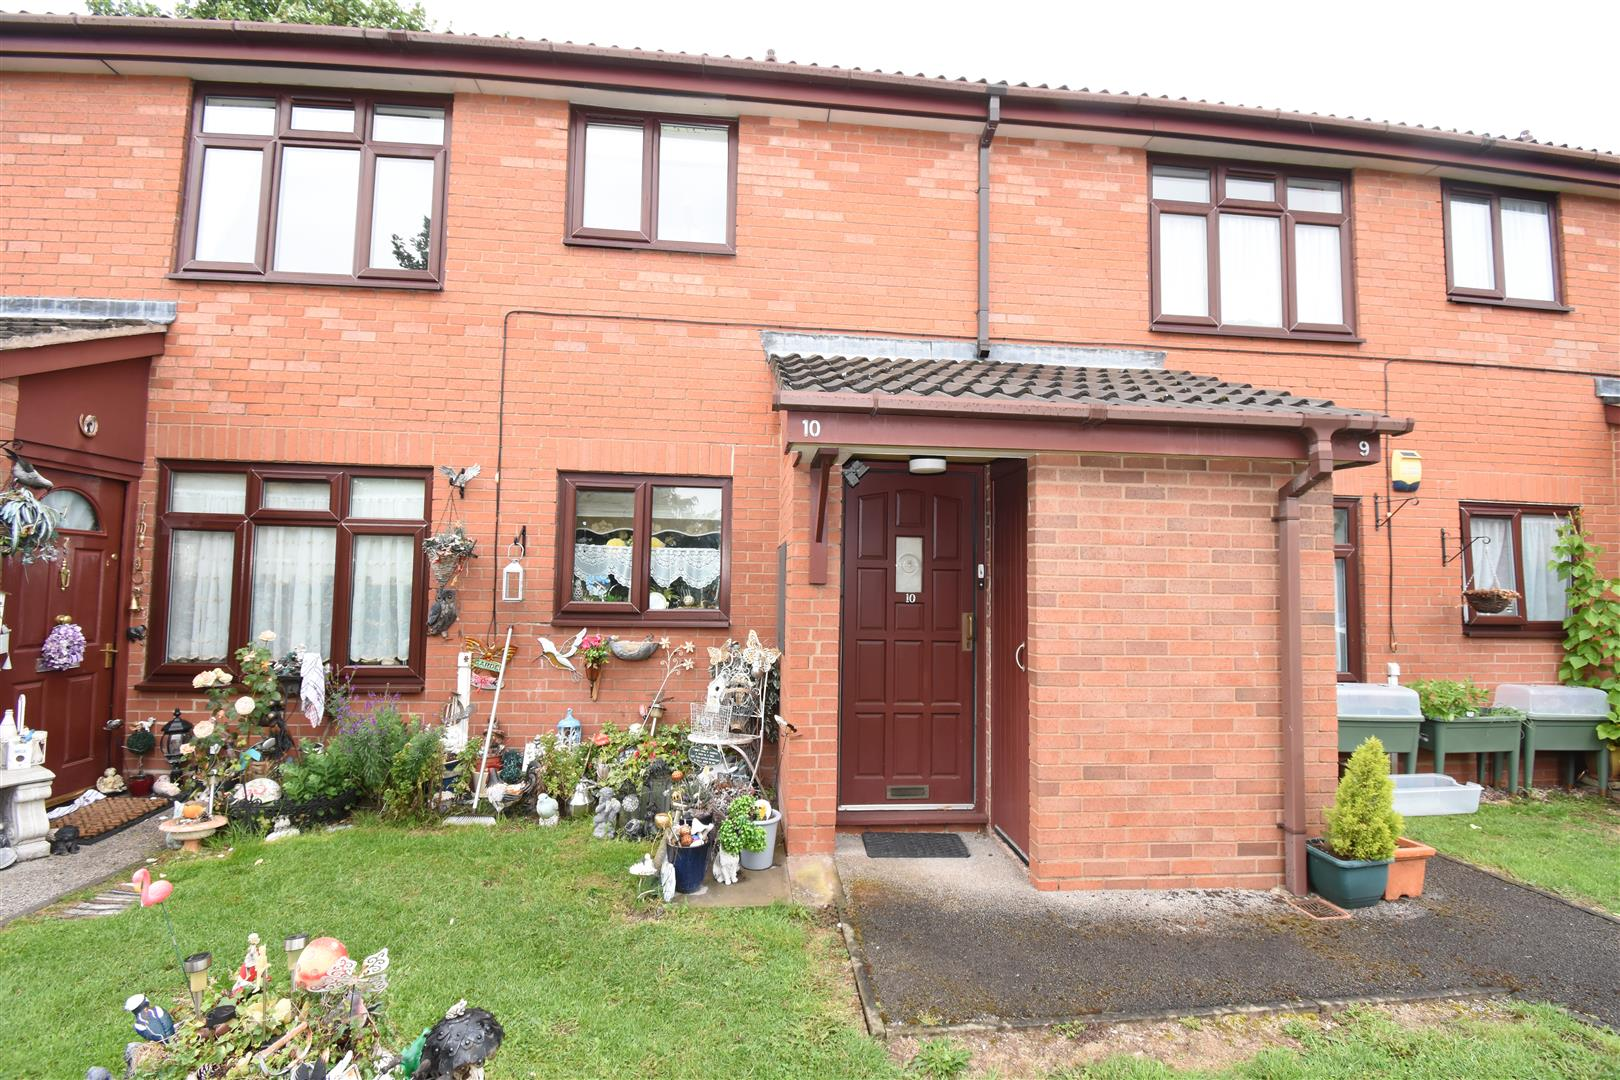 1 bed flat for sale in Alum Rock Road, Ward End, Birmingham 2